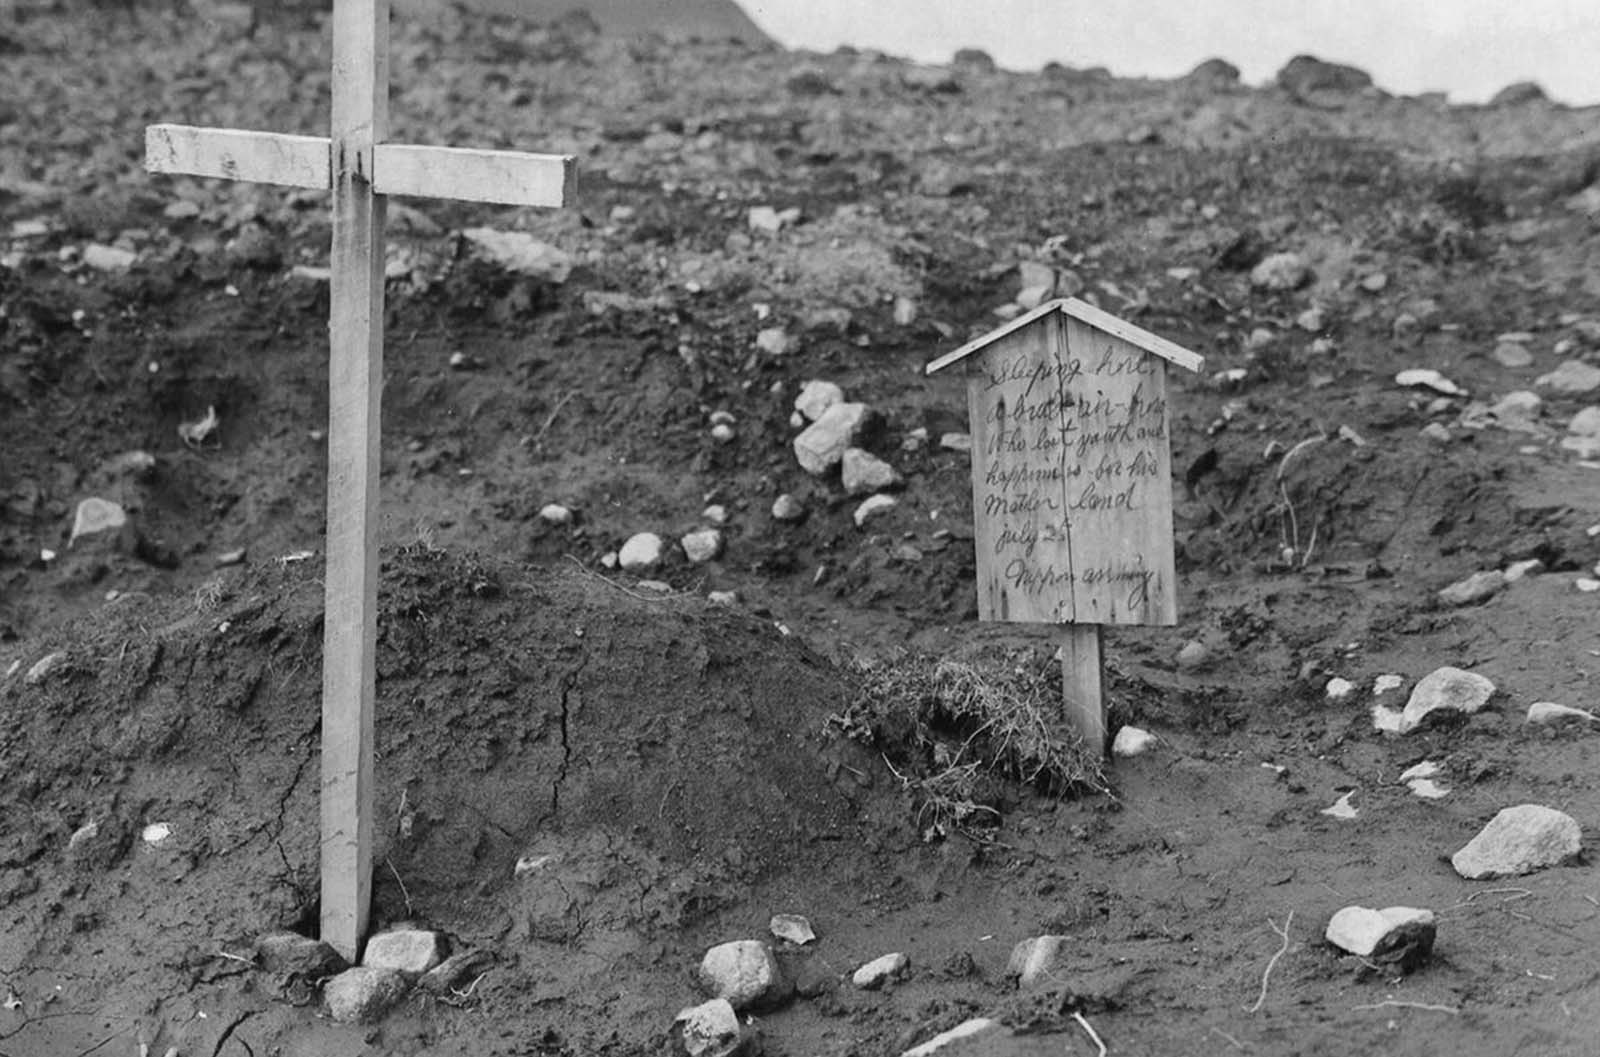 On Kiska Island, after Allied troops had landed, this grave marker was discovered in a small graveyard amid the bombed-out ruins in August of 1943. The marker was made and placed by members of the occupying Japanese Army, after they had buried an American pilot who had crashed on the island. The marker reads: